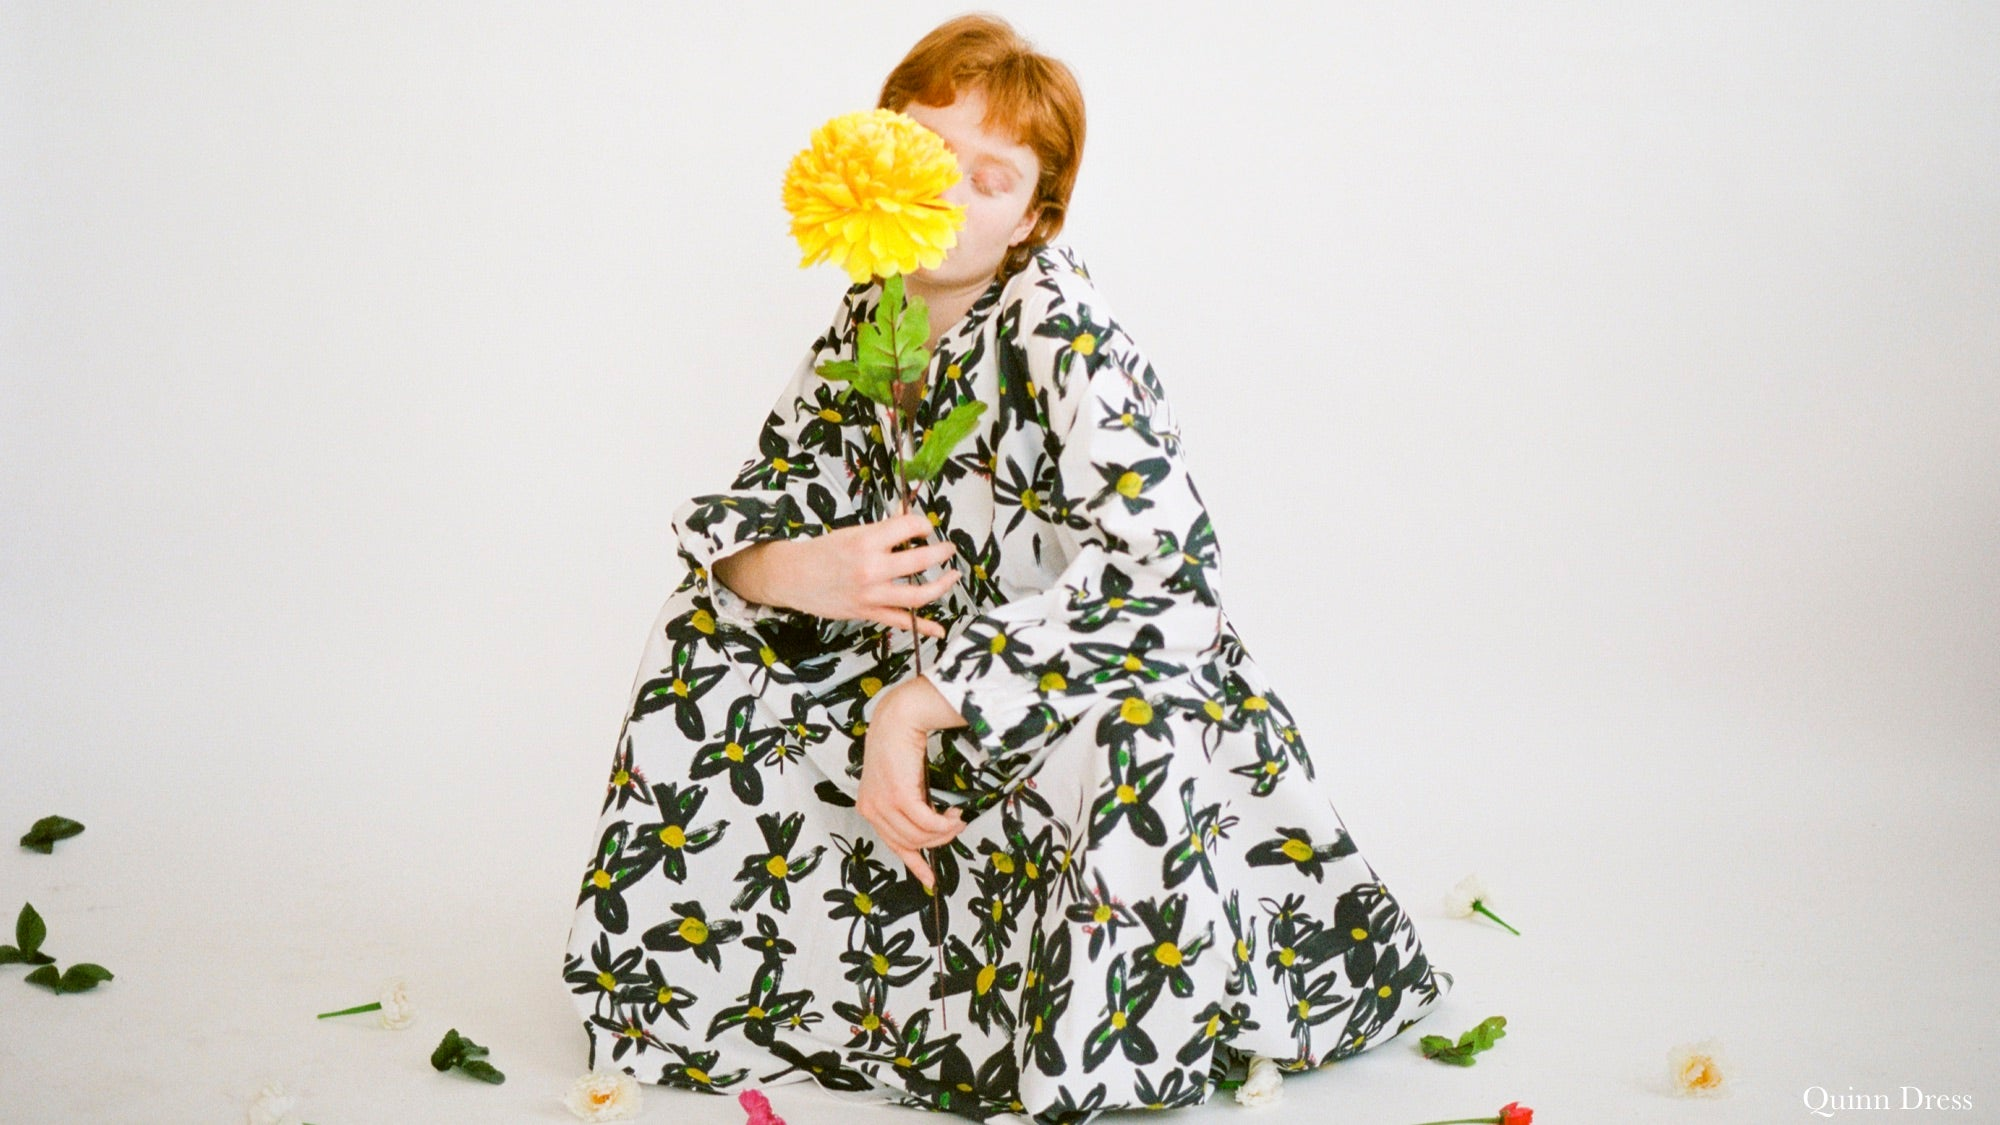 WRAY PF20 Lookbook featuring a hand painted daisy print on cotton